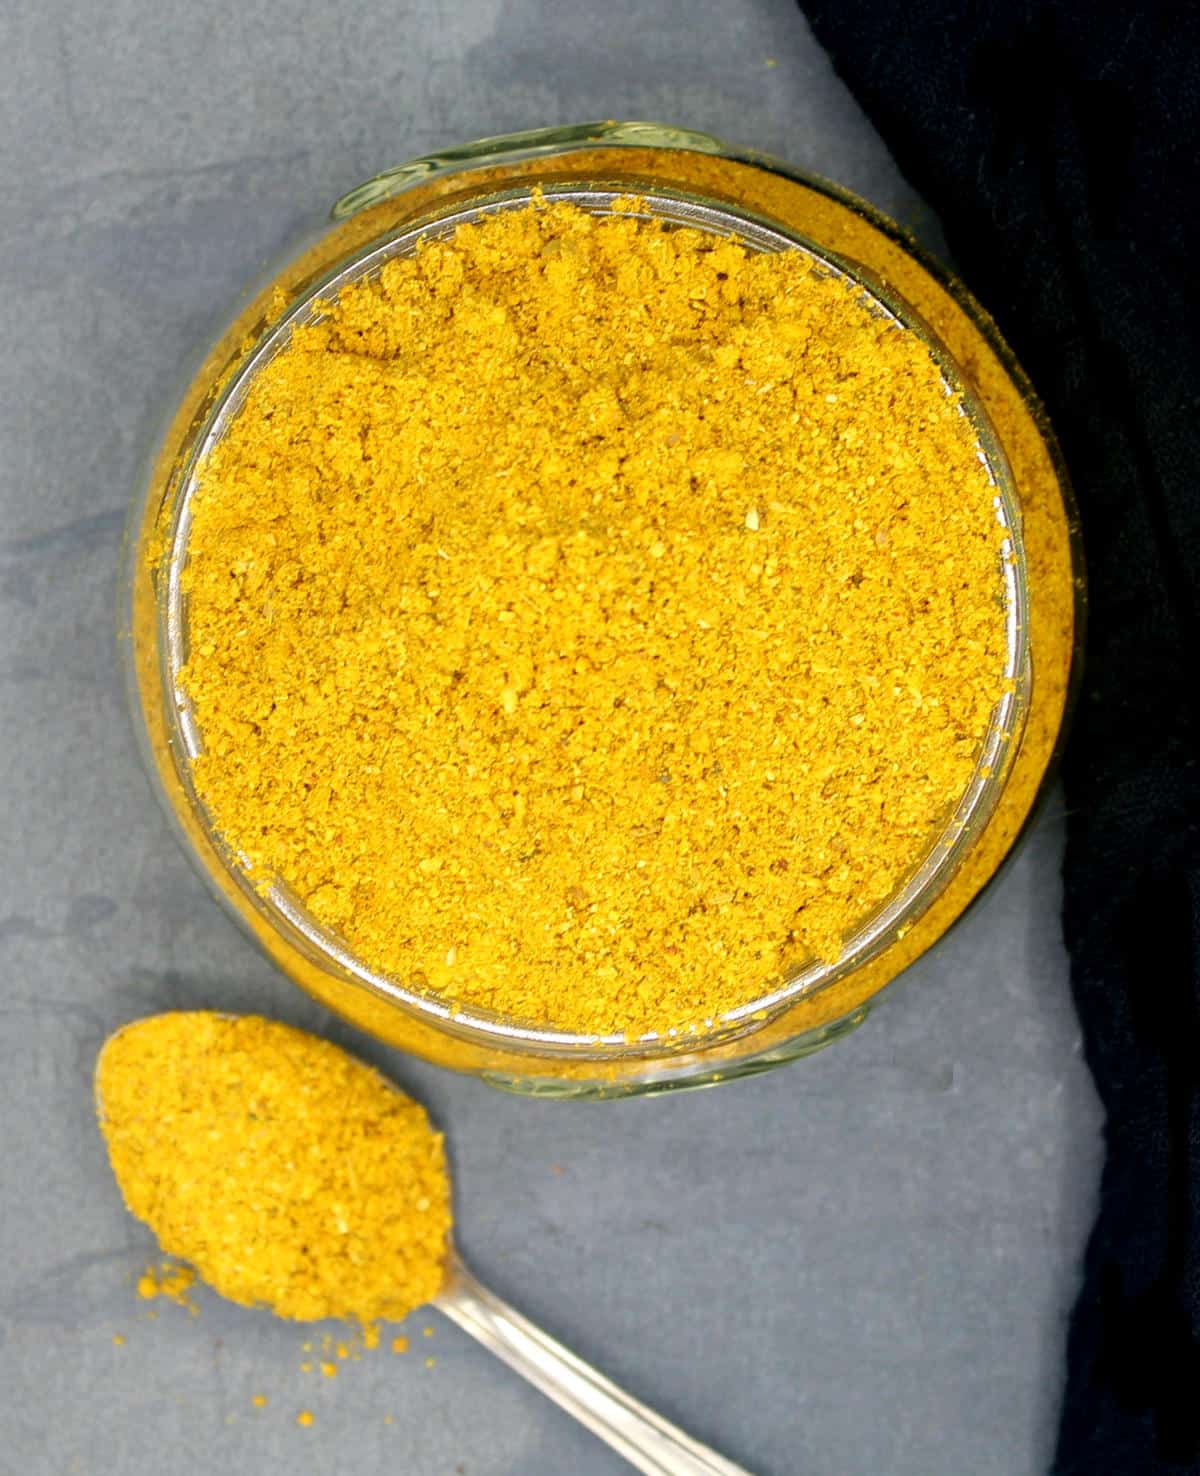 Overhead photo of a jar of yellow curry powder with a spoon.